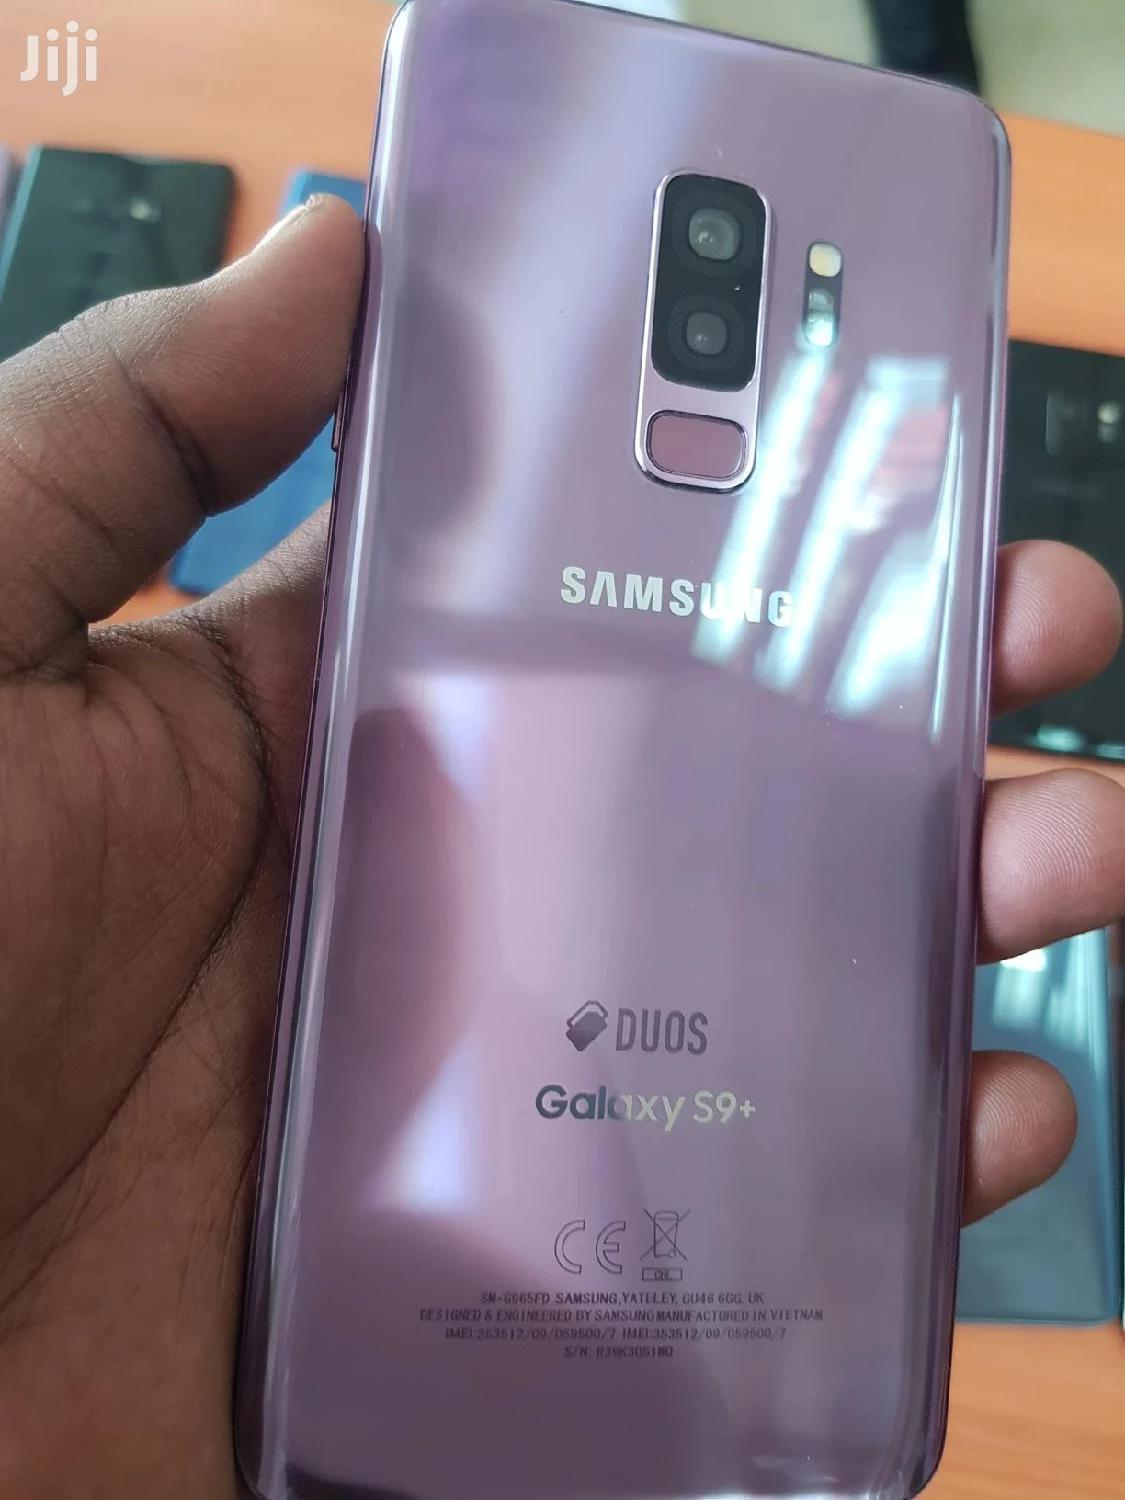 Samsung Galaxy S9 Plus 64 GB | Mobile Phones for sale in Nairobi Central, Nairobi, Kenya